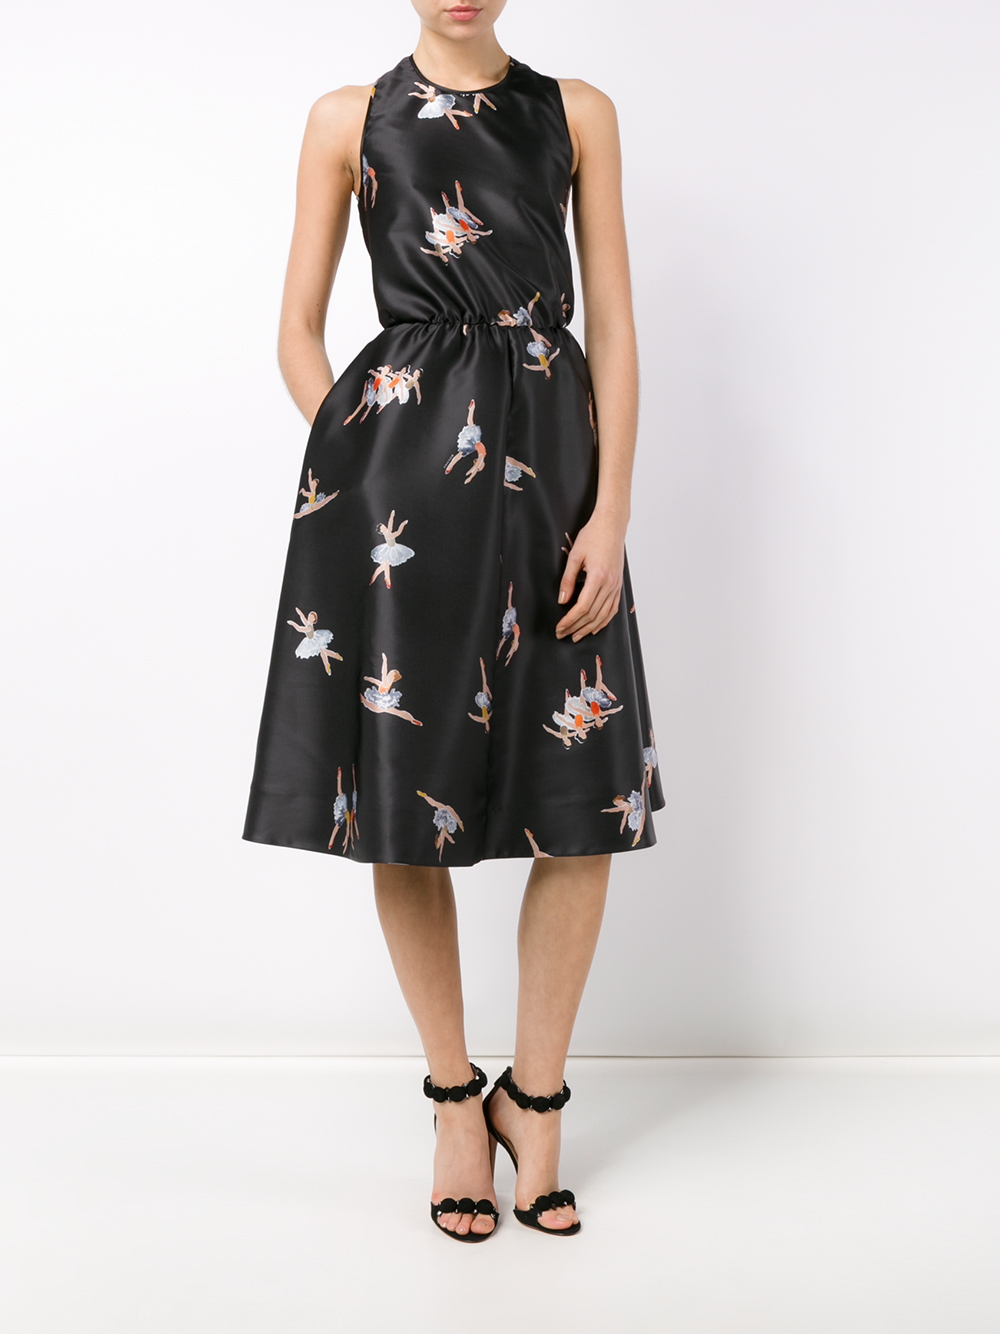 rochas-black-multi-dress-with-ballerina-embroidery-black-product-1-797361912-normal.jpeg